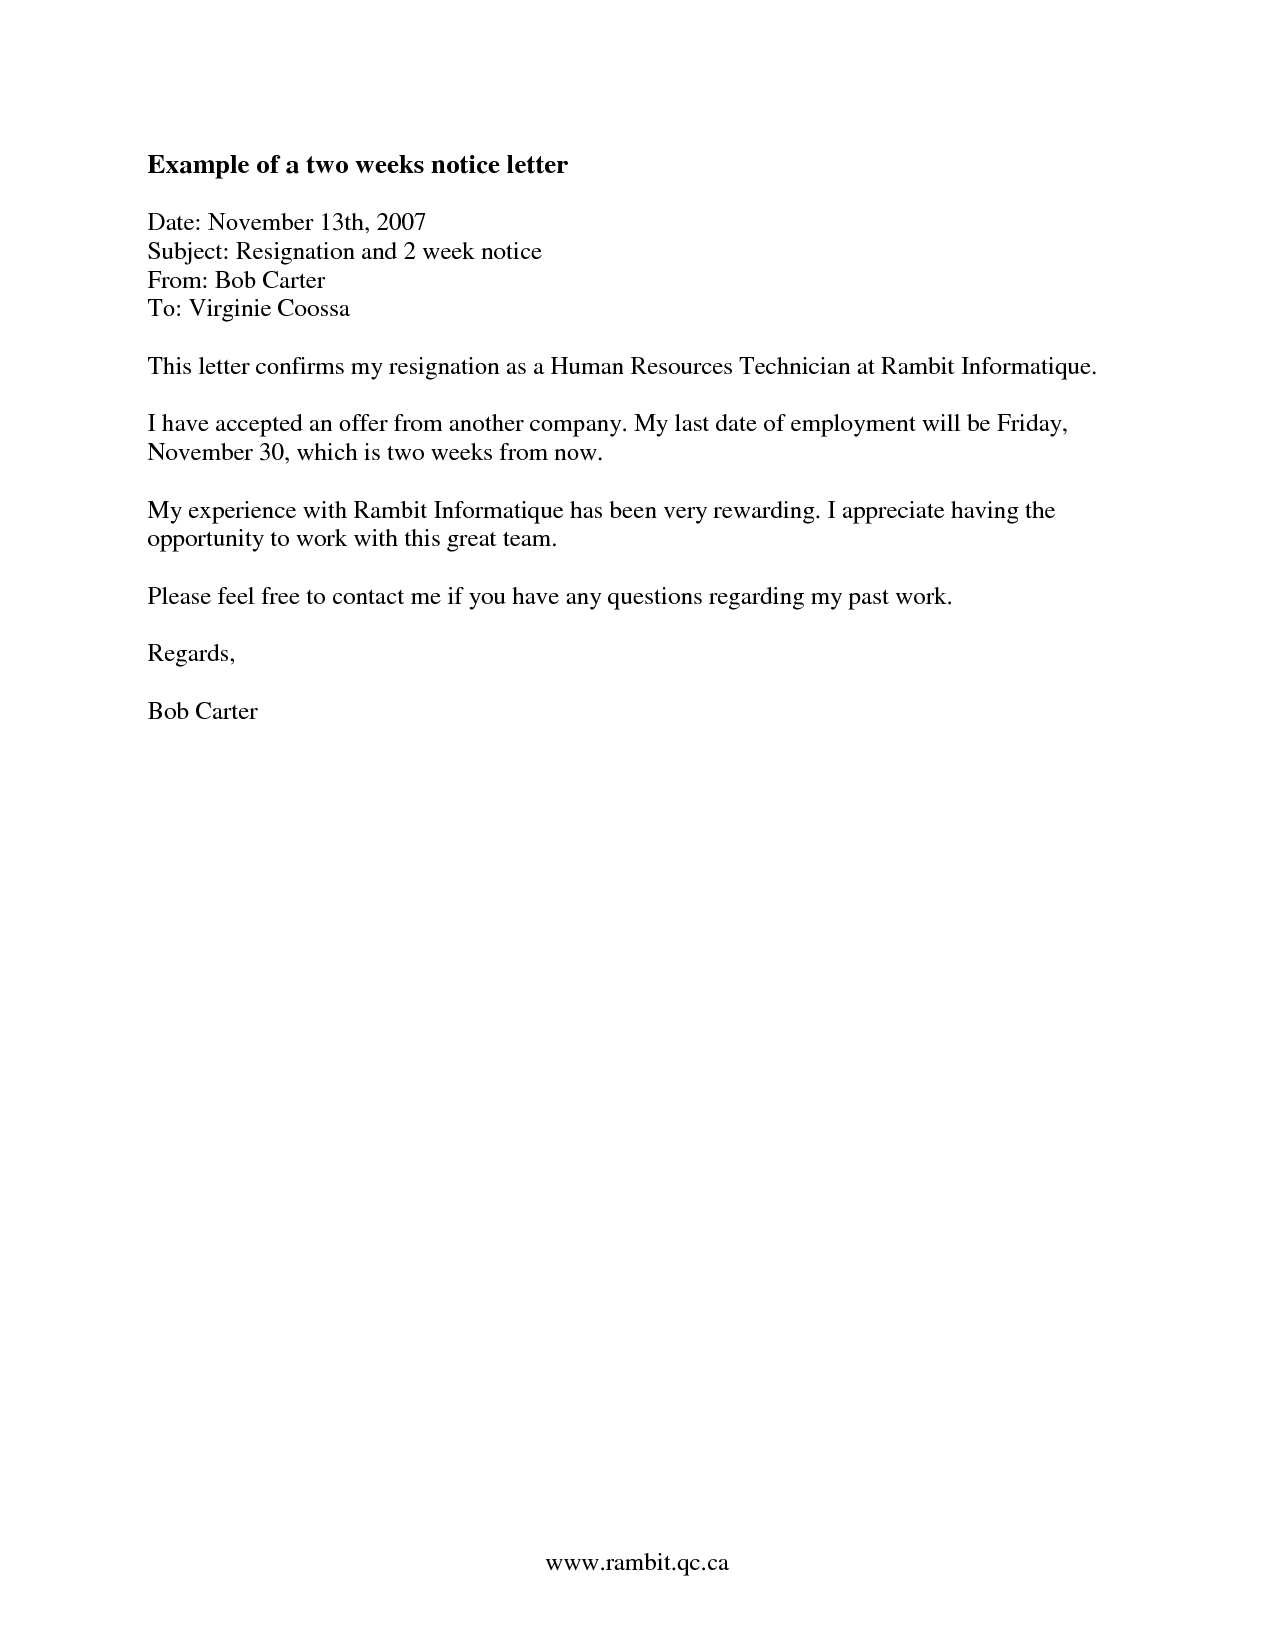 2 Week Resignation Letter Template - How to Find Examples Of Two Week Notice Recipes